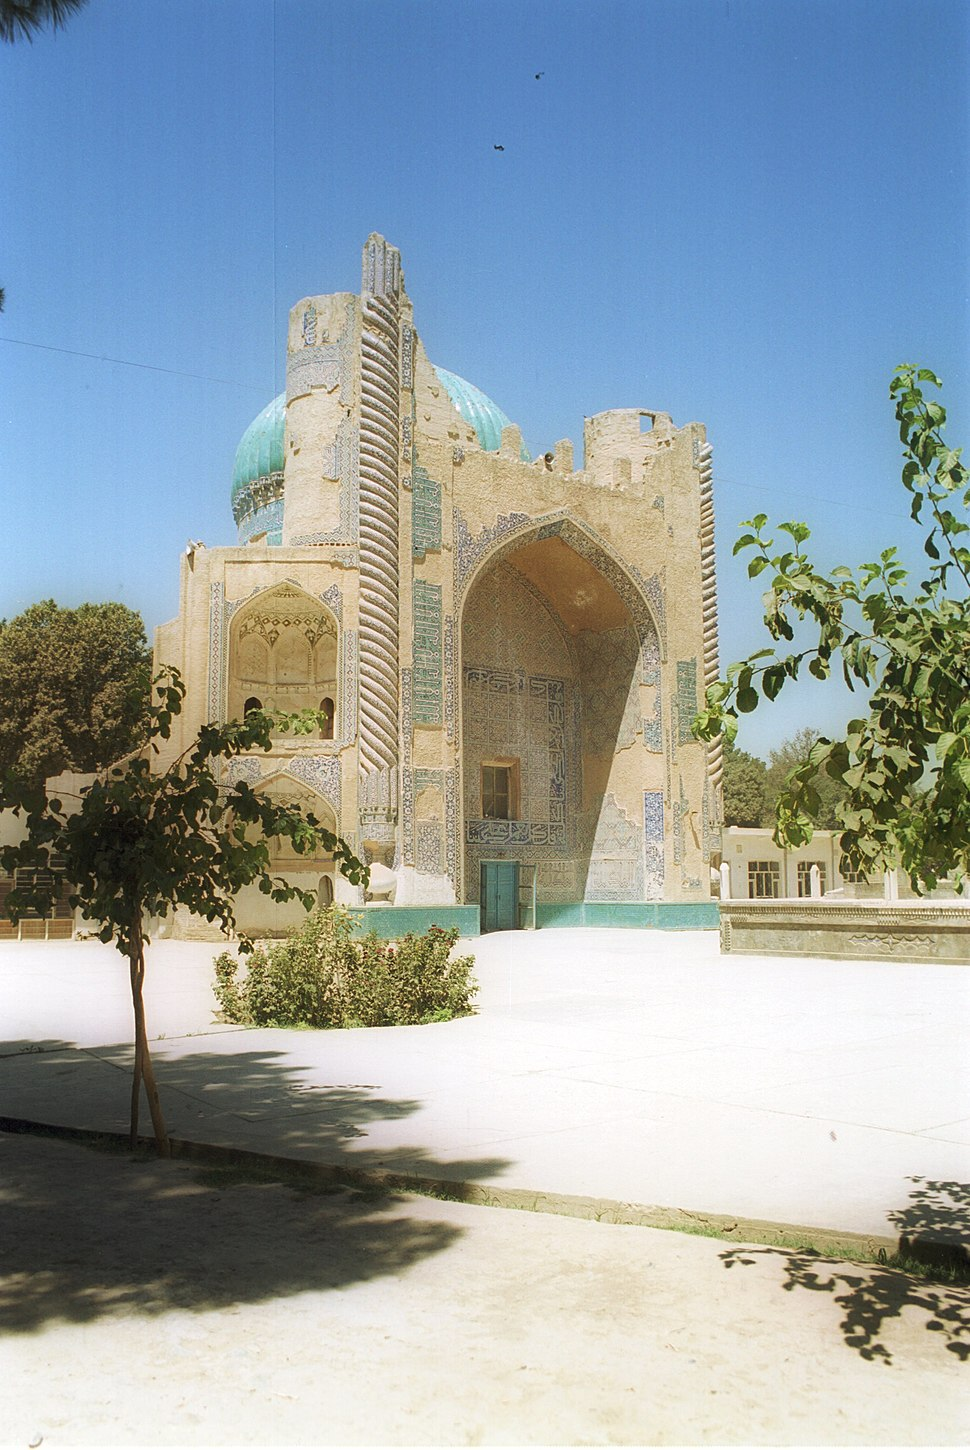 Ruins of the Green Mosque (Persian: مَسجد سَبز‬‎, translit. Masjid Sabz),[1] named for its green-tiled qubbah (Arabic: قٌـبَّـة‎, dome),[2] in July 2001